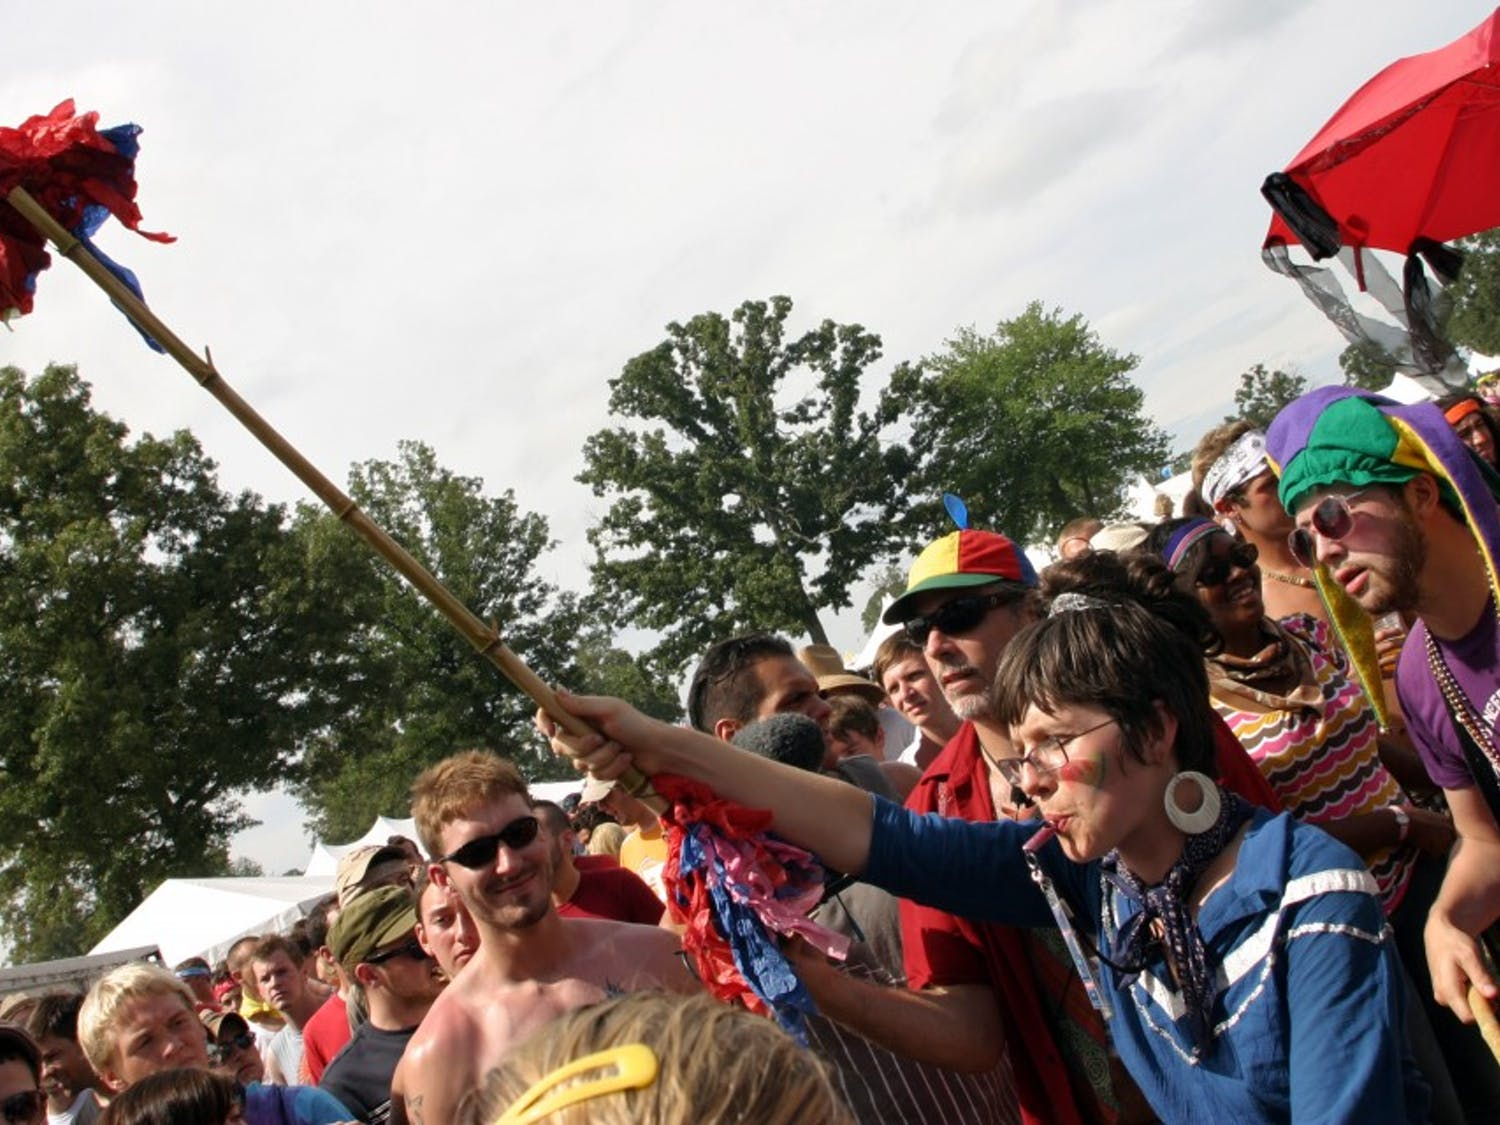 Performance artists march at the Bonnaroo Music and Arts Festival in Manchester, Tennessee, Saturday, June 14, 2008. (Alex Marsh/McClatchy Interactive/MCT)